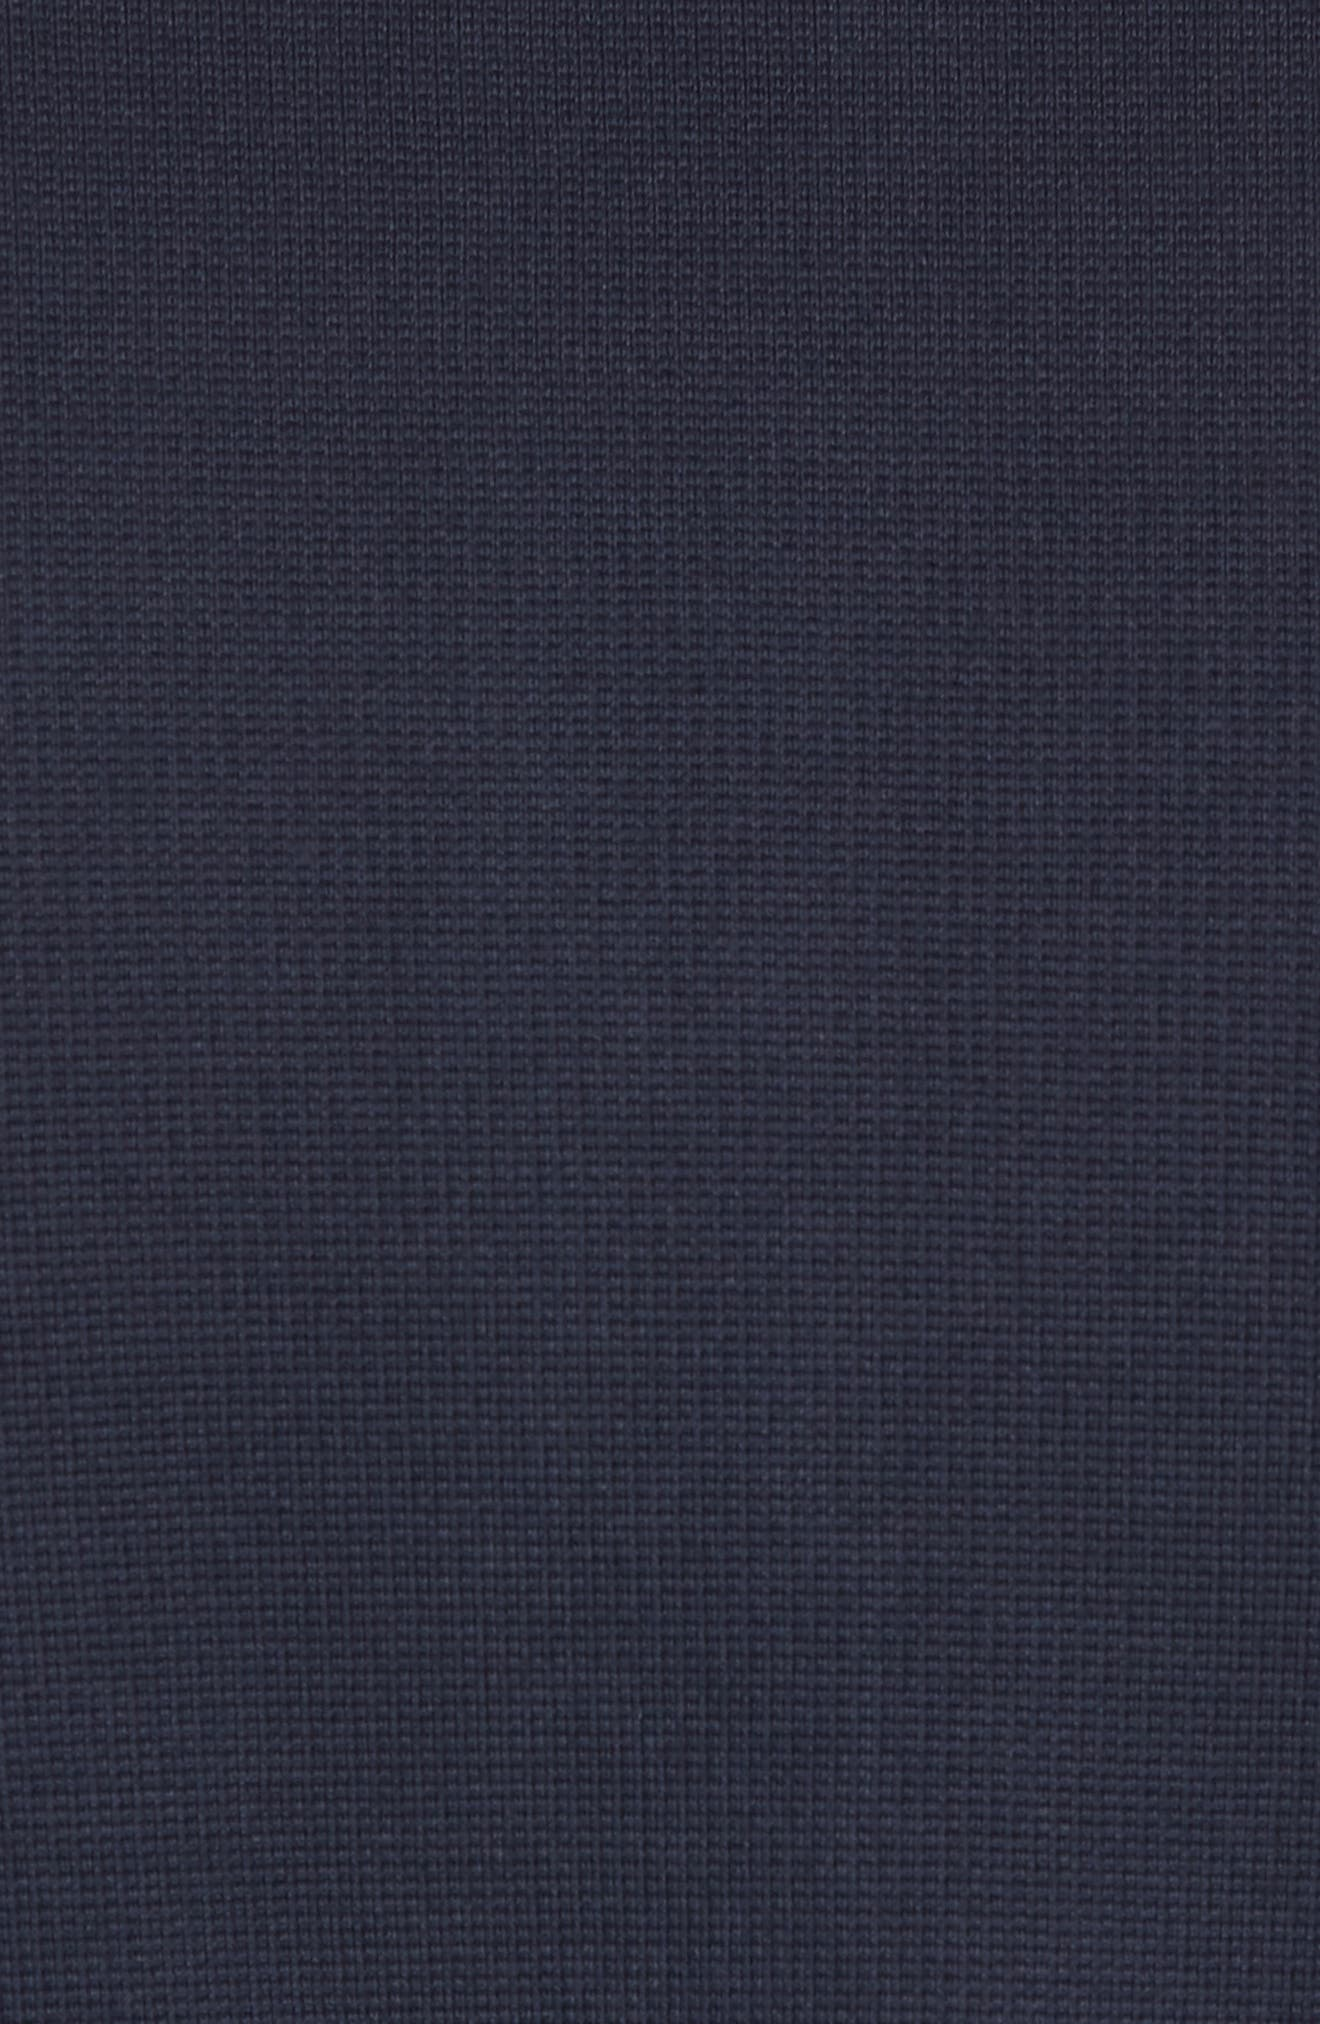 Henley T-Shirt,                             Alternate thumbnail 5, color,                             DARK NAVY BLUE